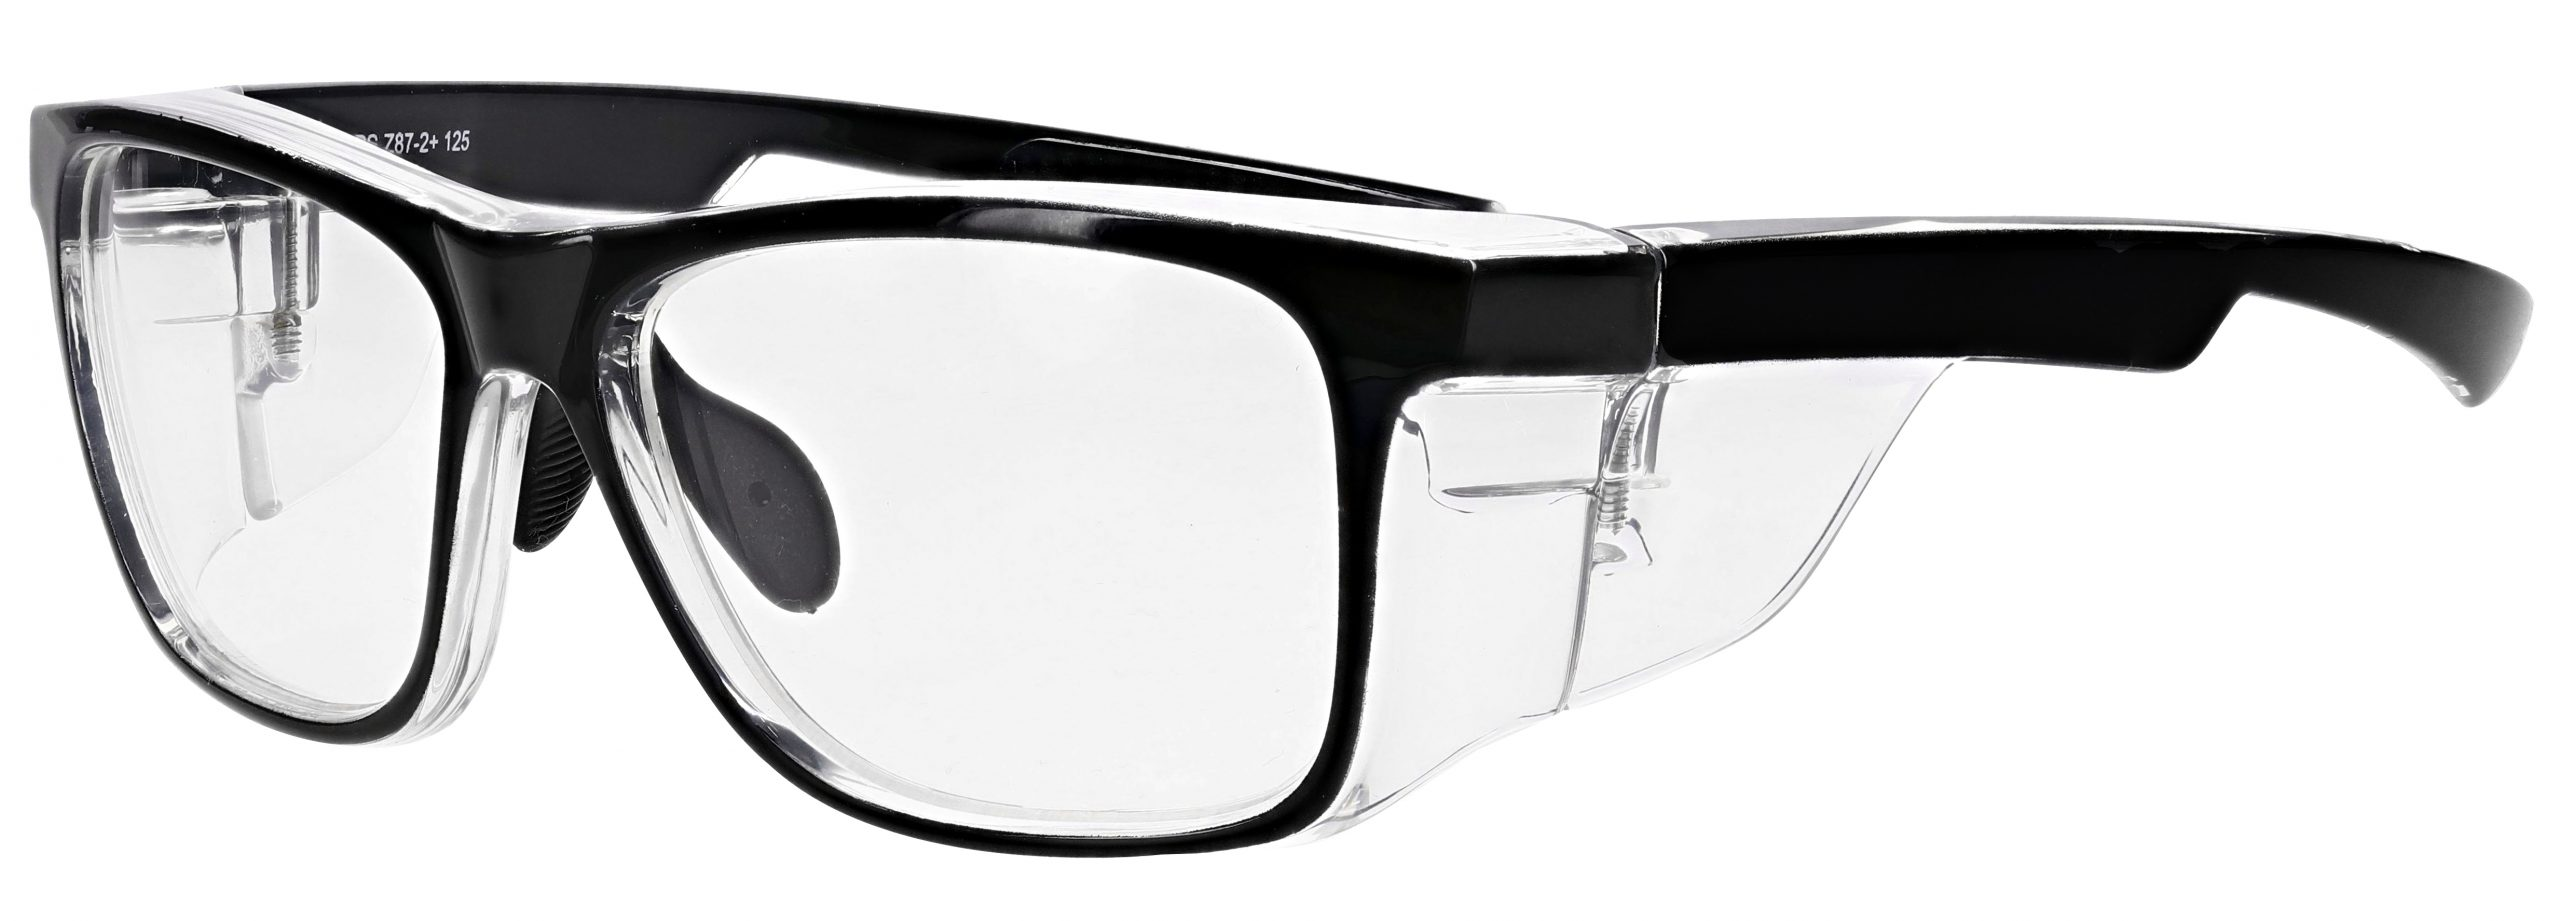 RX-15011 Prescription Safety Glasses in Black/Clear Frame with Clear Lens, Angled to the Side Left